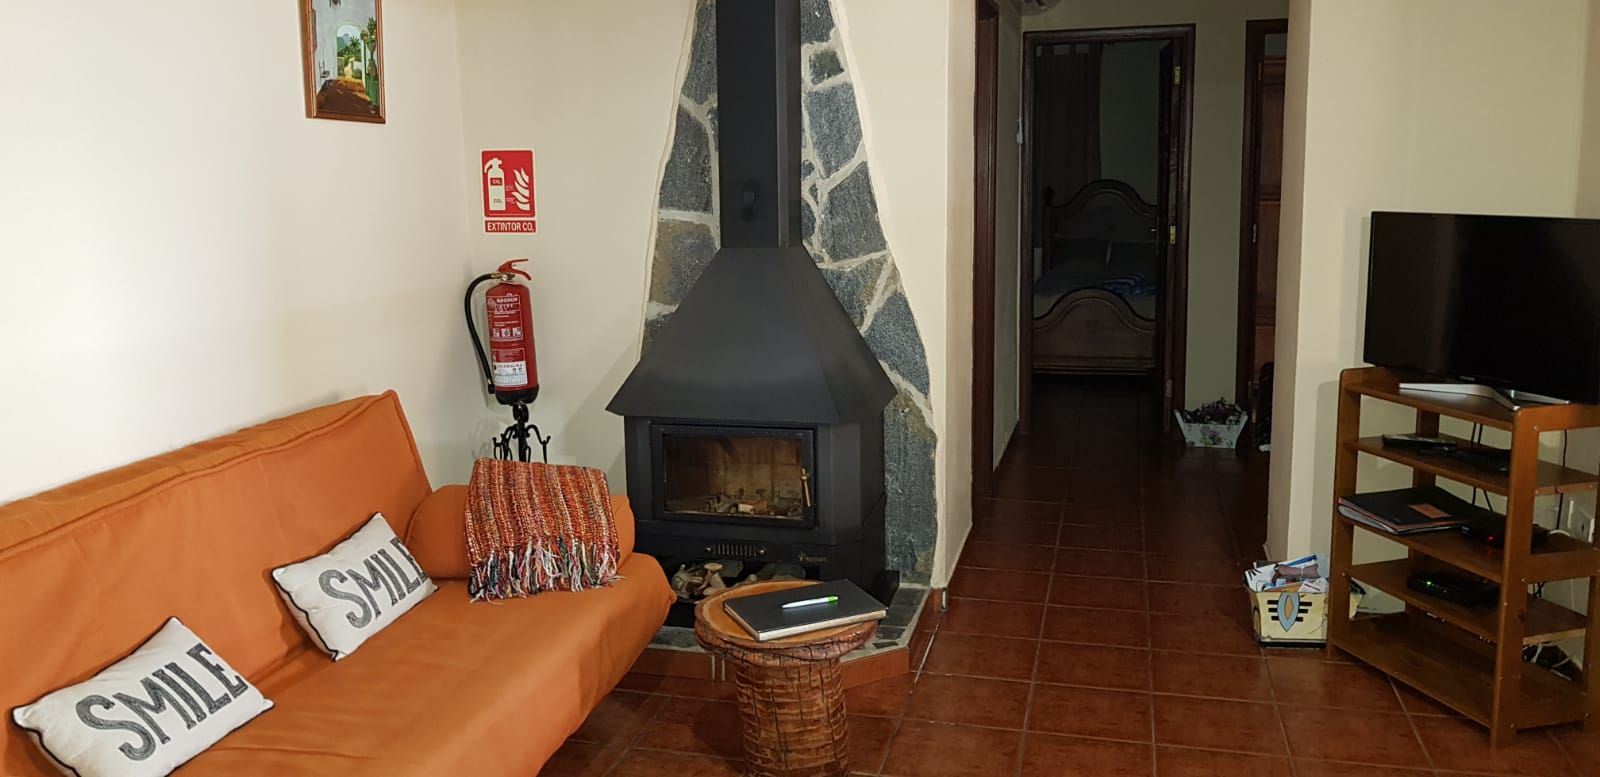 Log fire to keep you cosy in winter months